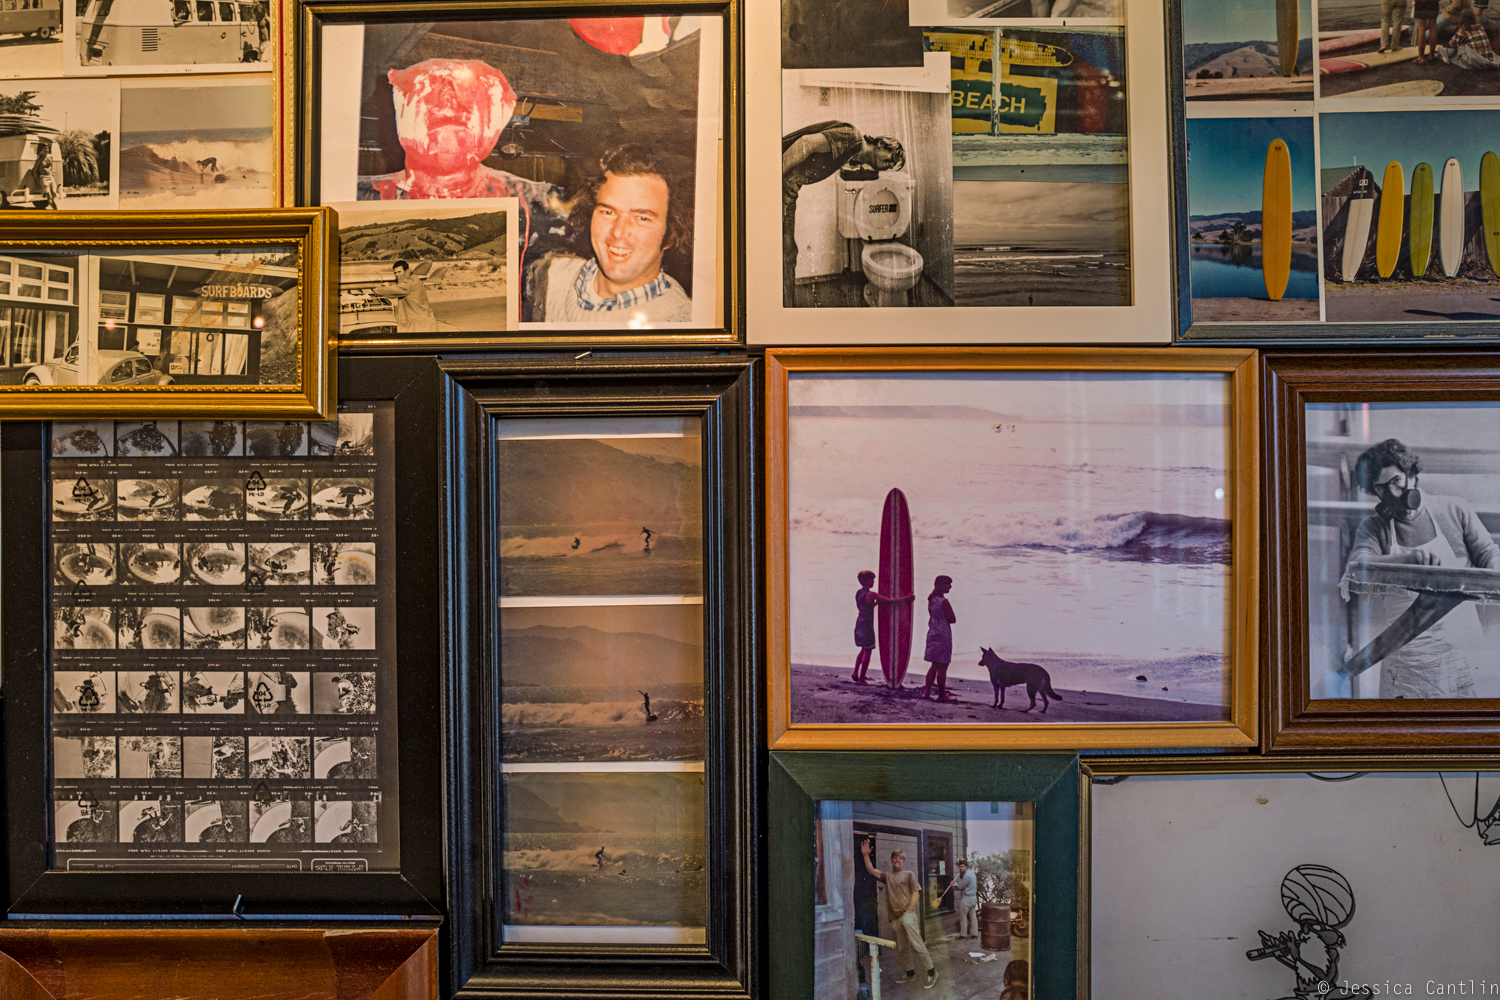 Surfing History at the Bolinas Museum